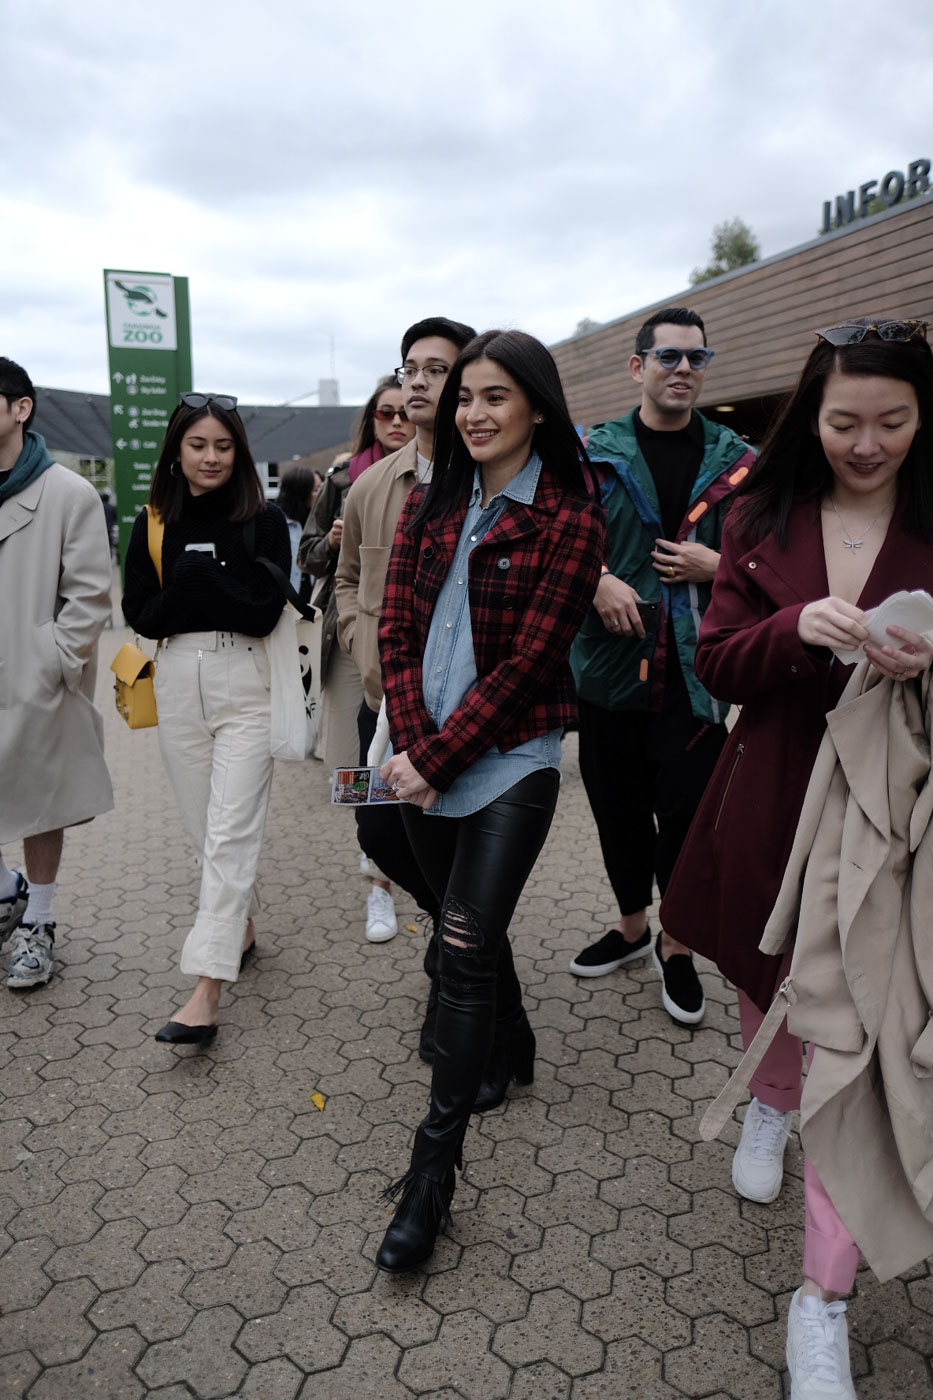 TRIP TO THE ZOO. Anne Curtis and friends on their way to Taronga Zoo.